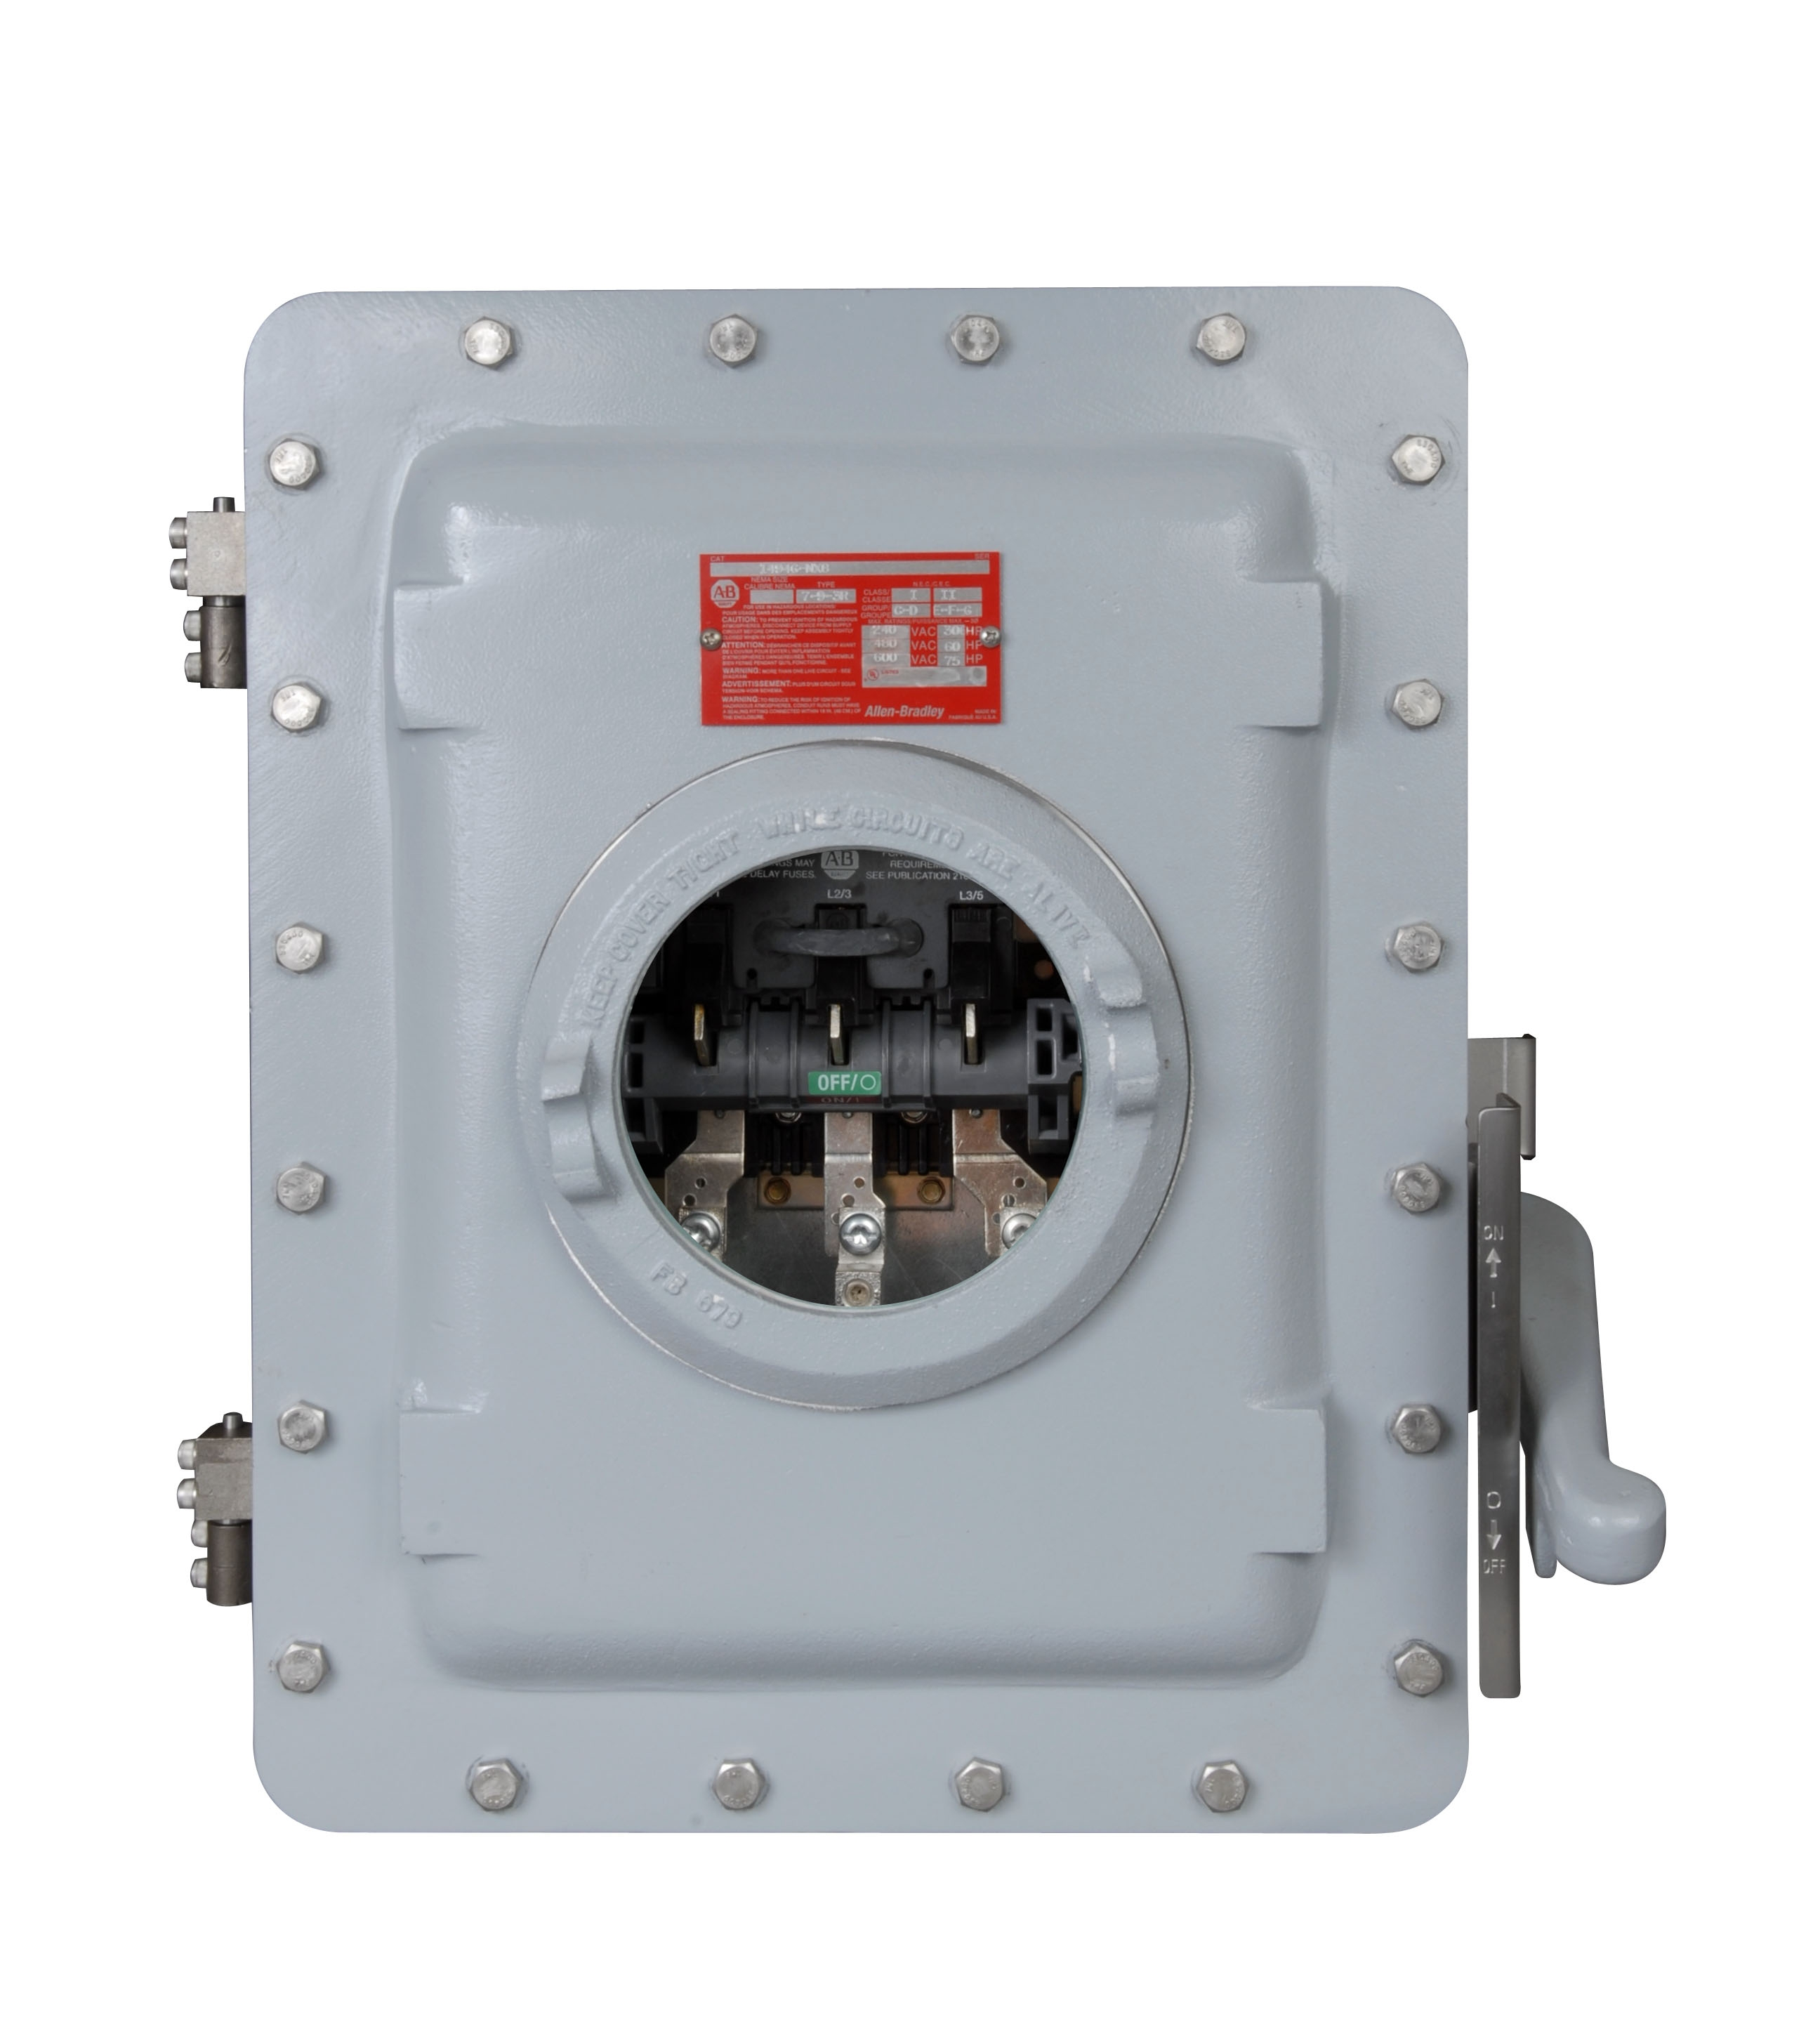 1494G-NX8 Enclosed Disconnect Switch, Hazardous Location, 100A switch rating for use in 30, 60, and 100 A applications,Type 3R, 7 & 9 BOLTED ENCL, CLASS I, DIV. 1 & 2, GROUPS C & D, CLASS II, GROUPS E,F,G